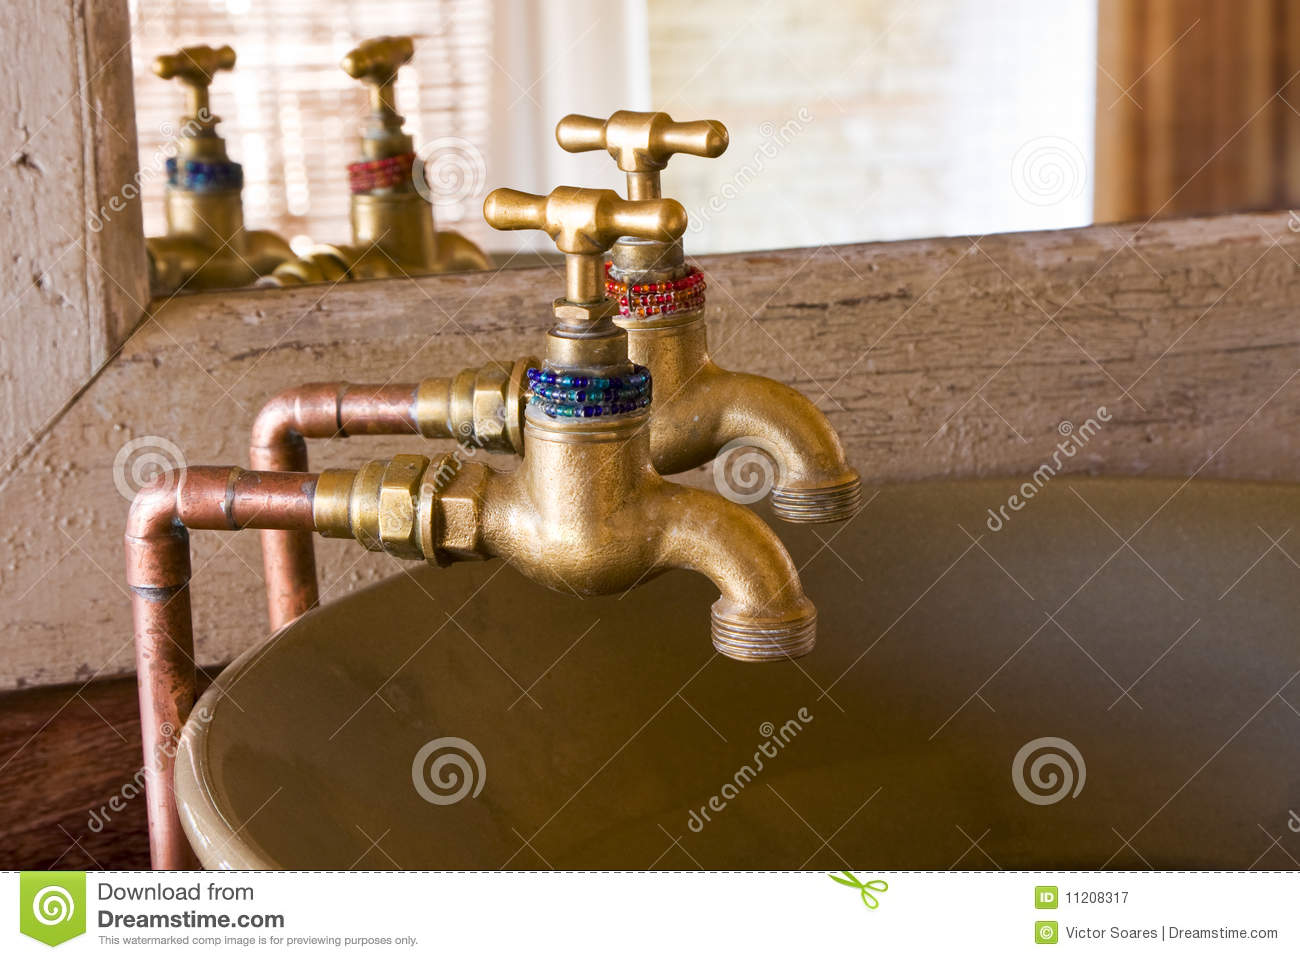 Old style taps stock image. Image of mirror, metal, antique - 11208317